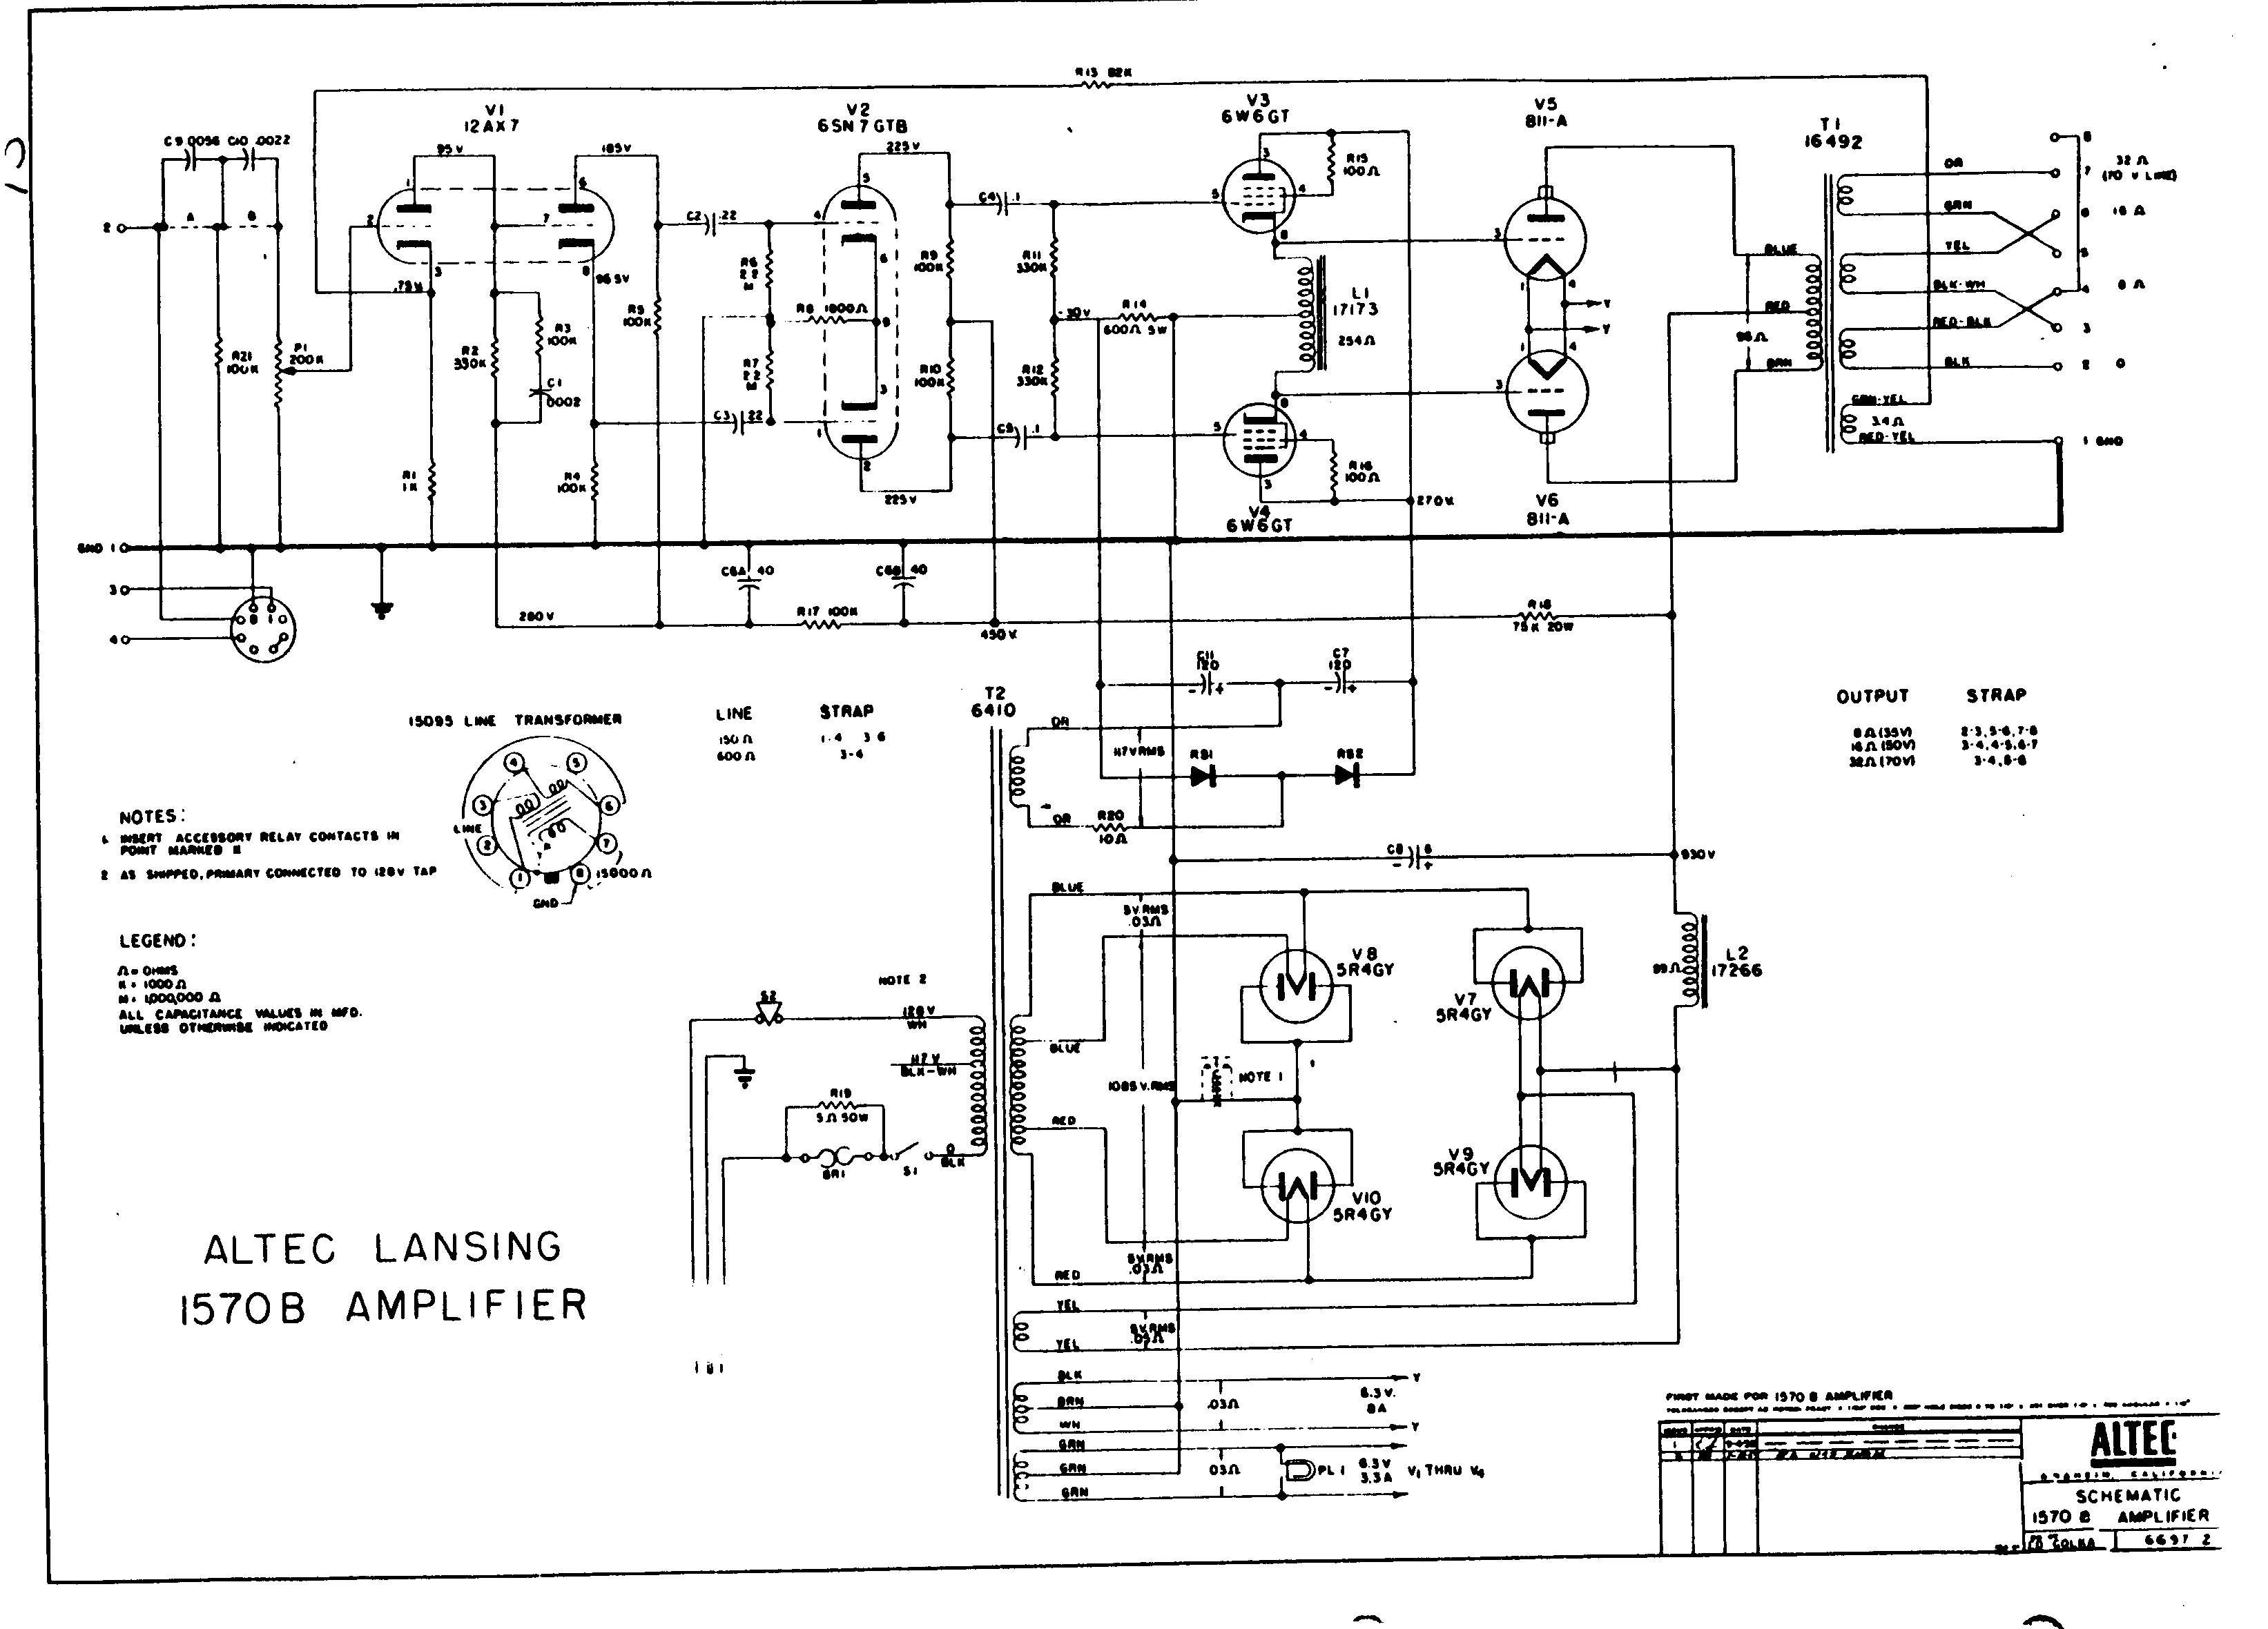 Marvelous Altec Lansing Acs340 Wiring Diagram Basic Electronics Wiring Diagram Wiring Cloud Battdienstapotheekhoekschewaardnl